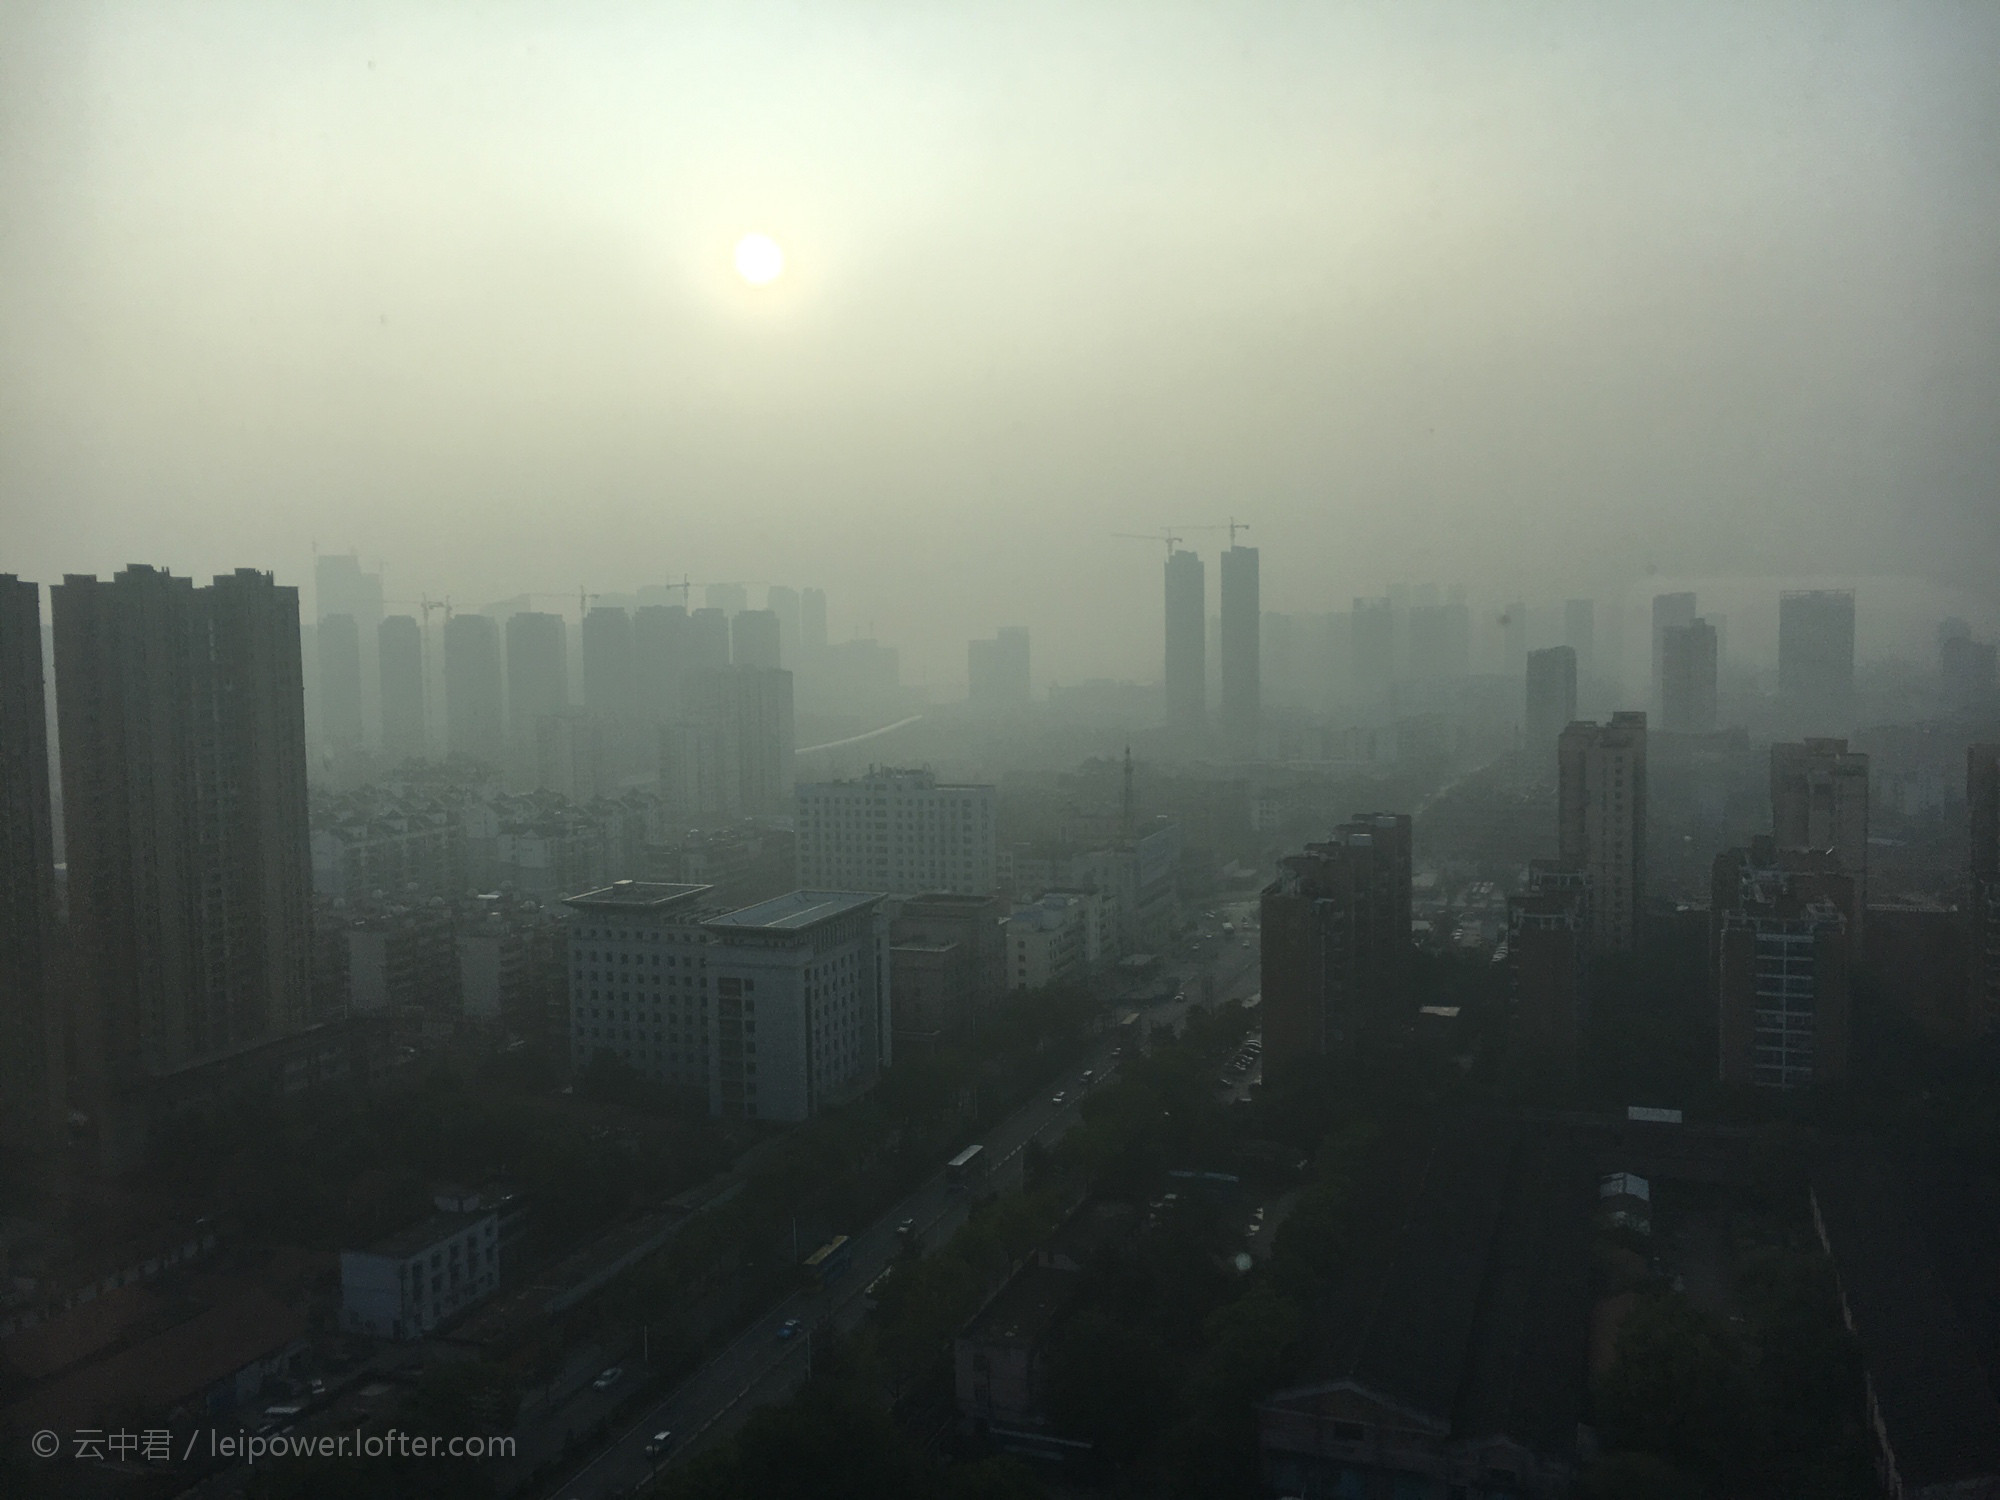 """Ozone is """"a primary constituent of urban smog"""". - Photo by 云中君 under CC BY 2.5"""